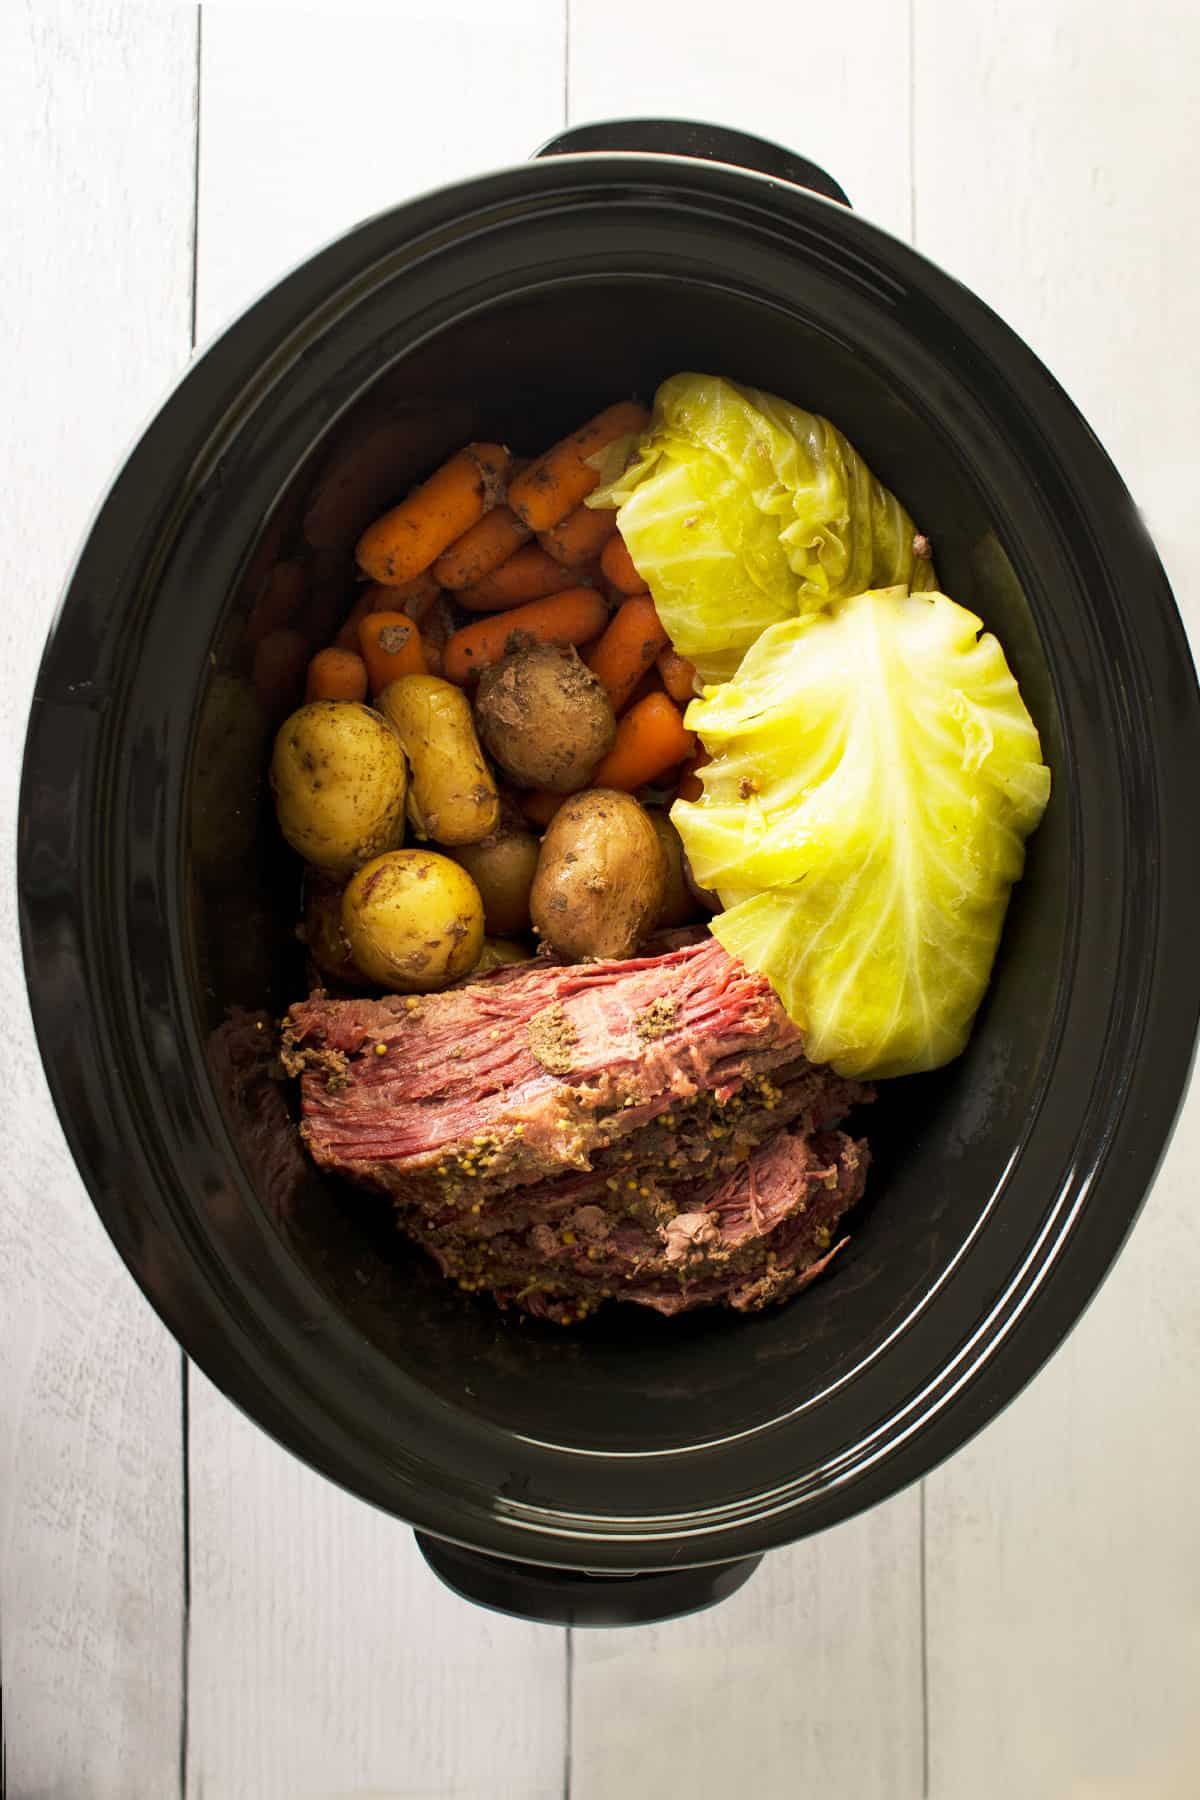 Homemade Corned Beef And Cabbage Crock Pot Recipe